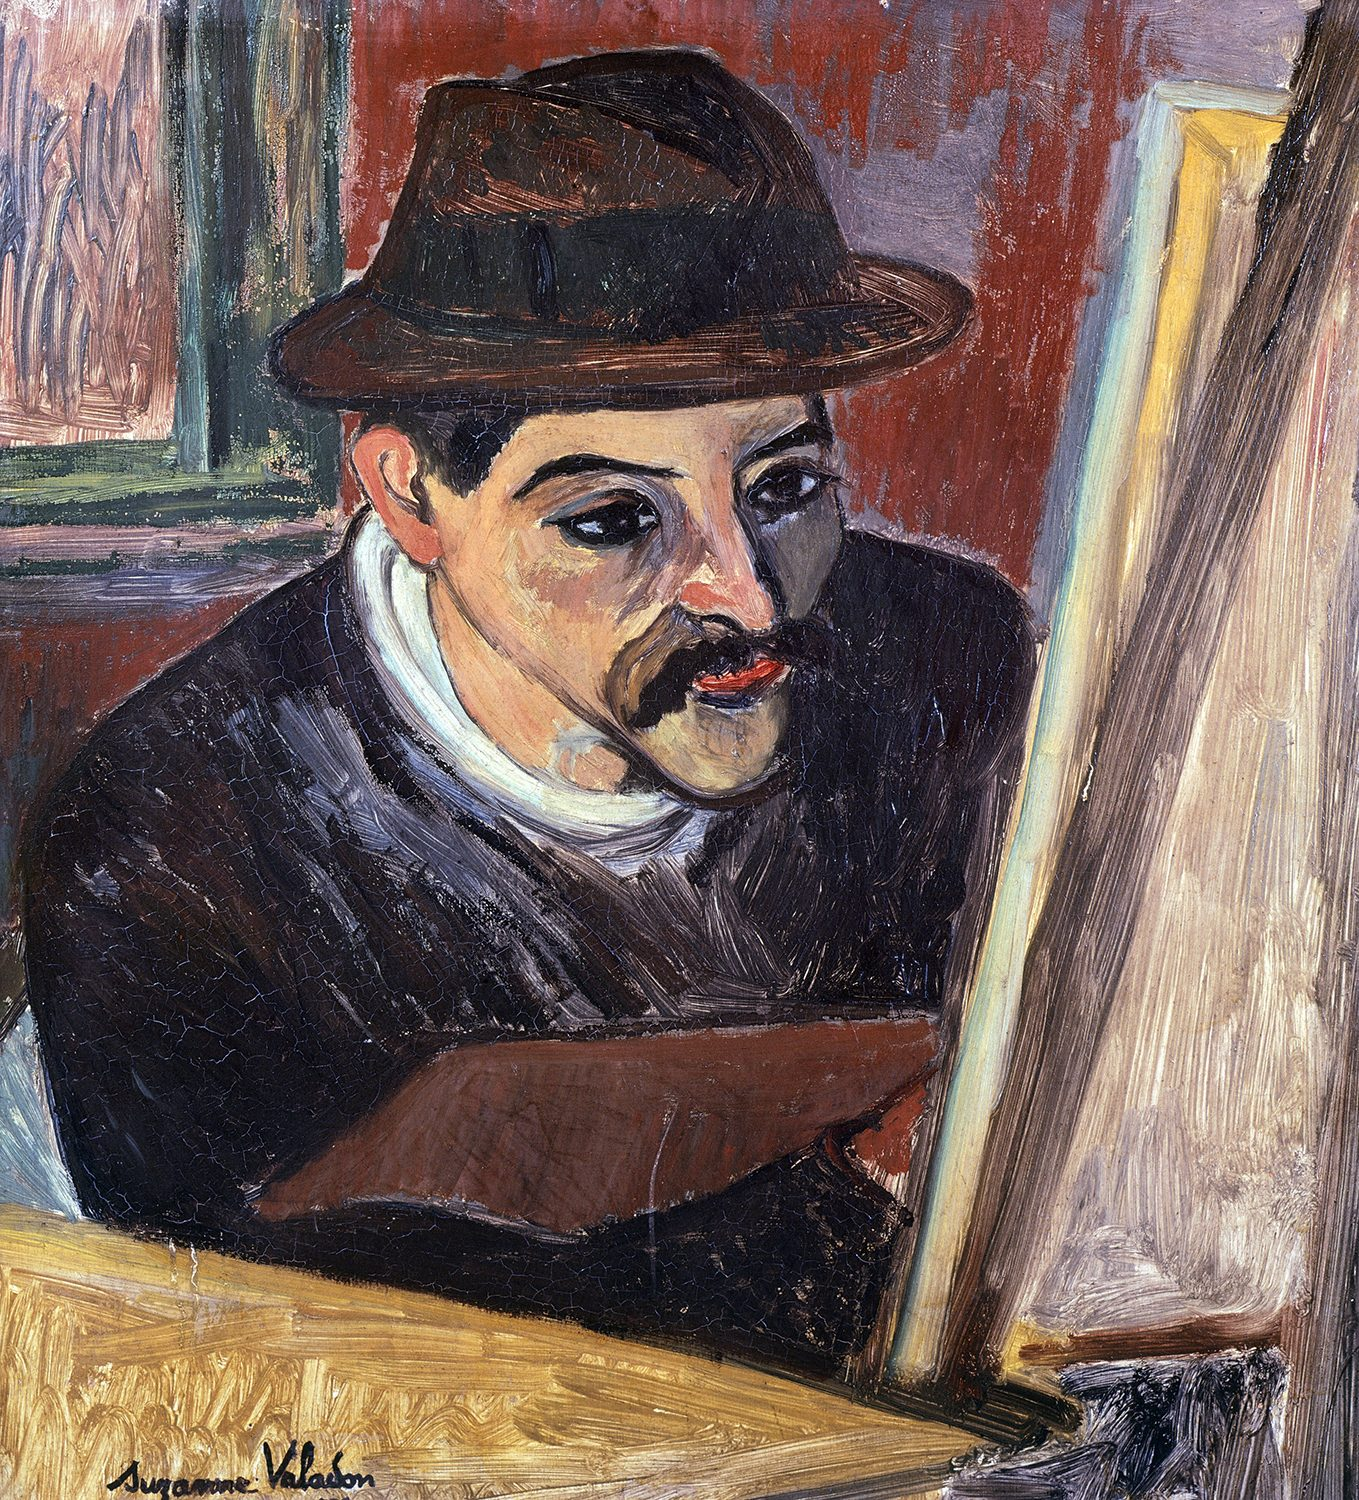 La Chambre Bleue Valadon Suzanne Valadon Archives Of Women Artists Research And Exhibitions